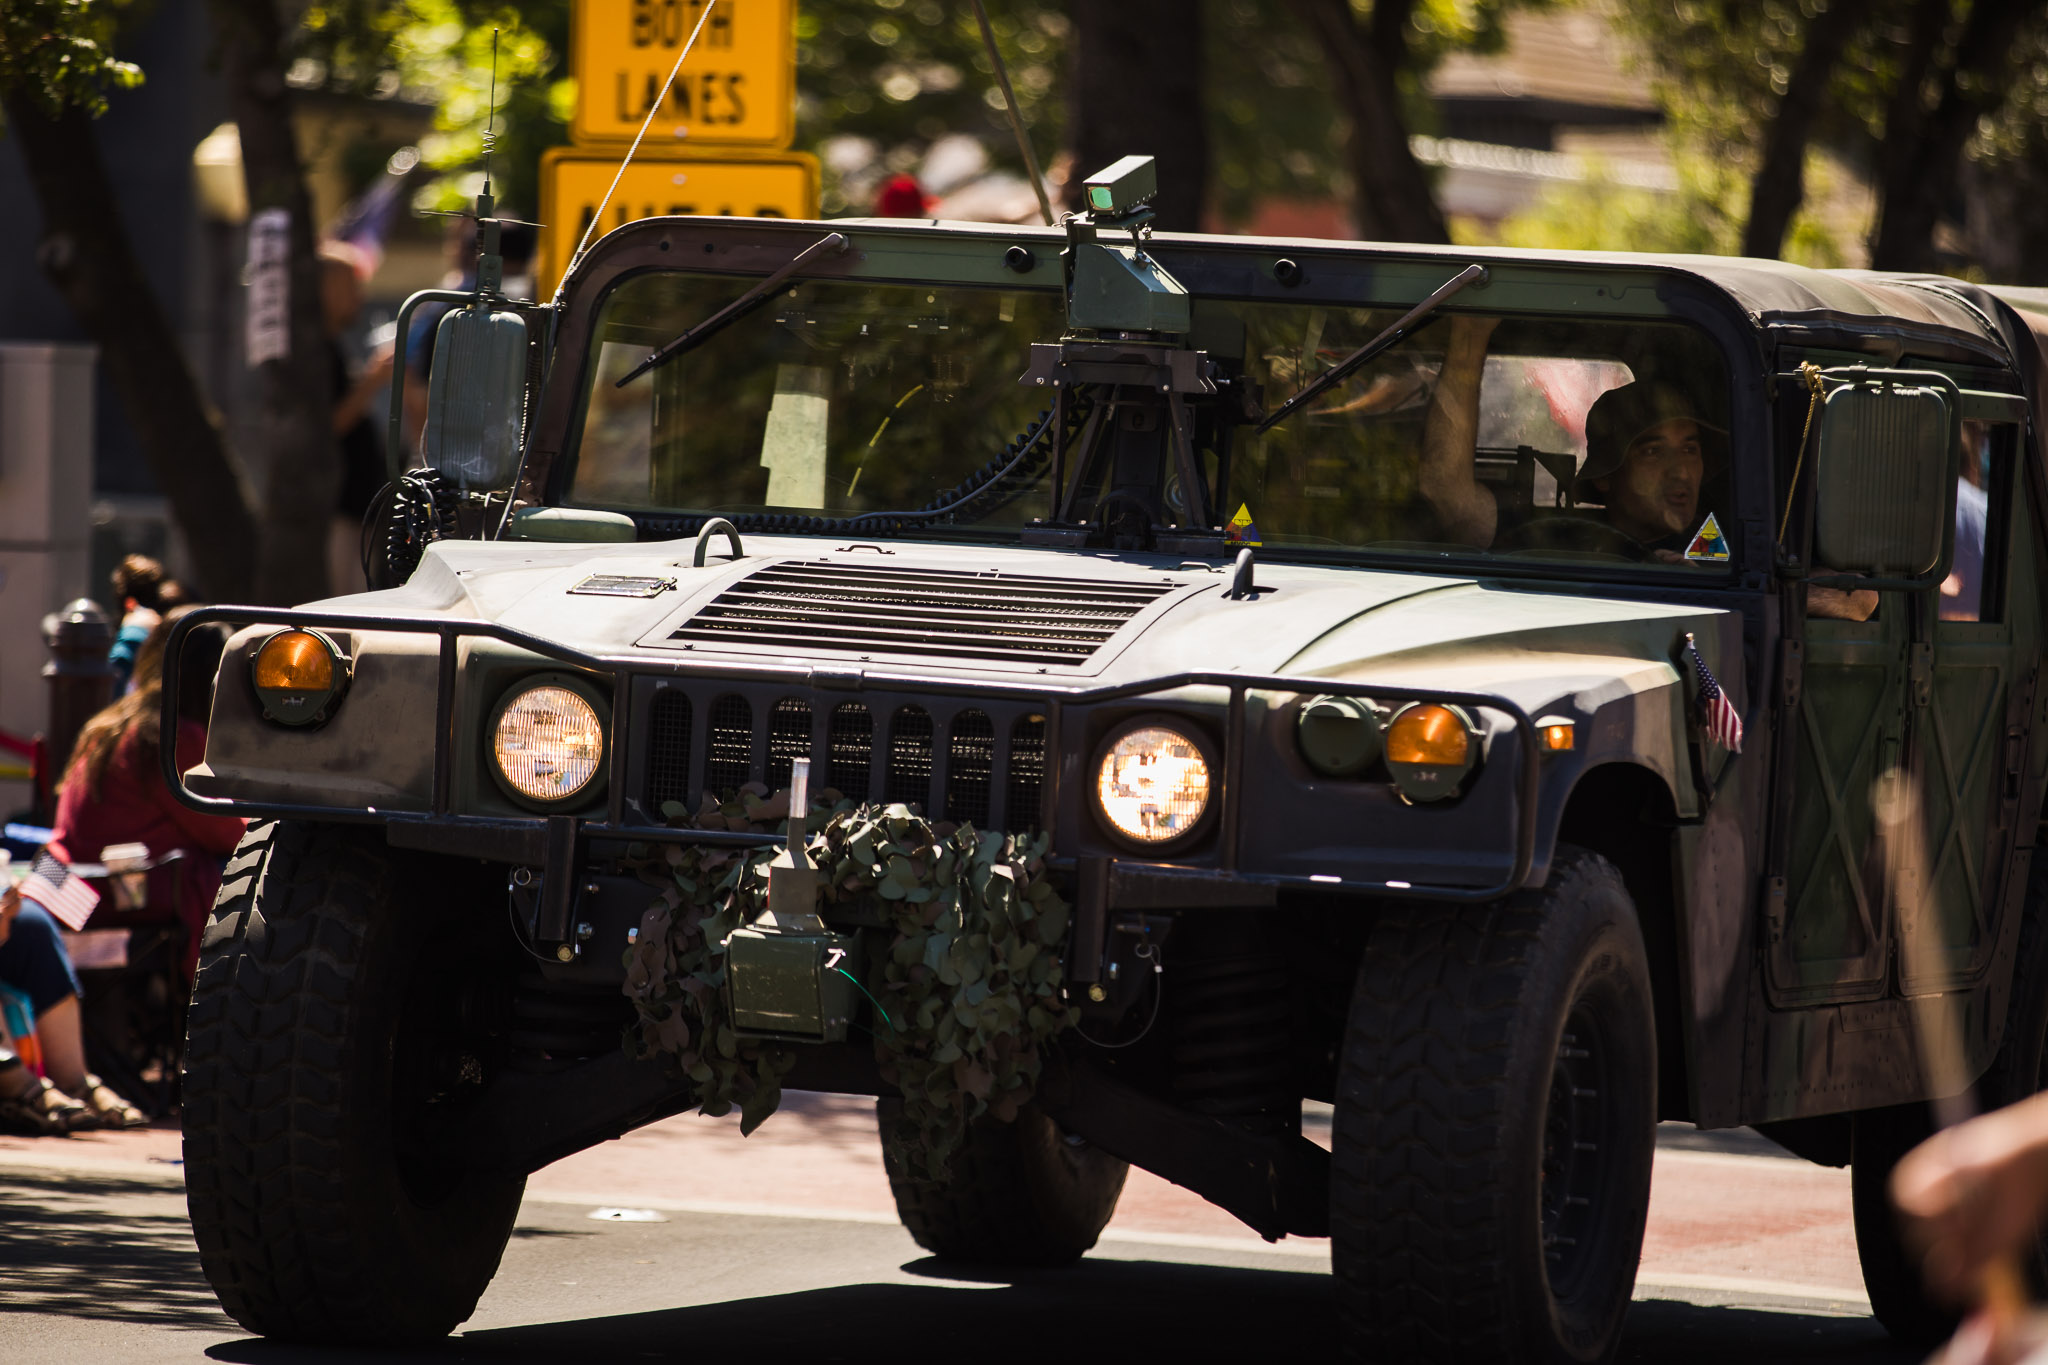 Archer_Inspired_Photography_Morgan_Hill_California_4th_of_july_parade-127.jpg